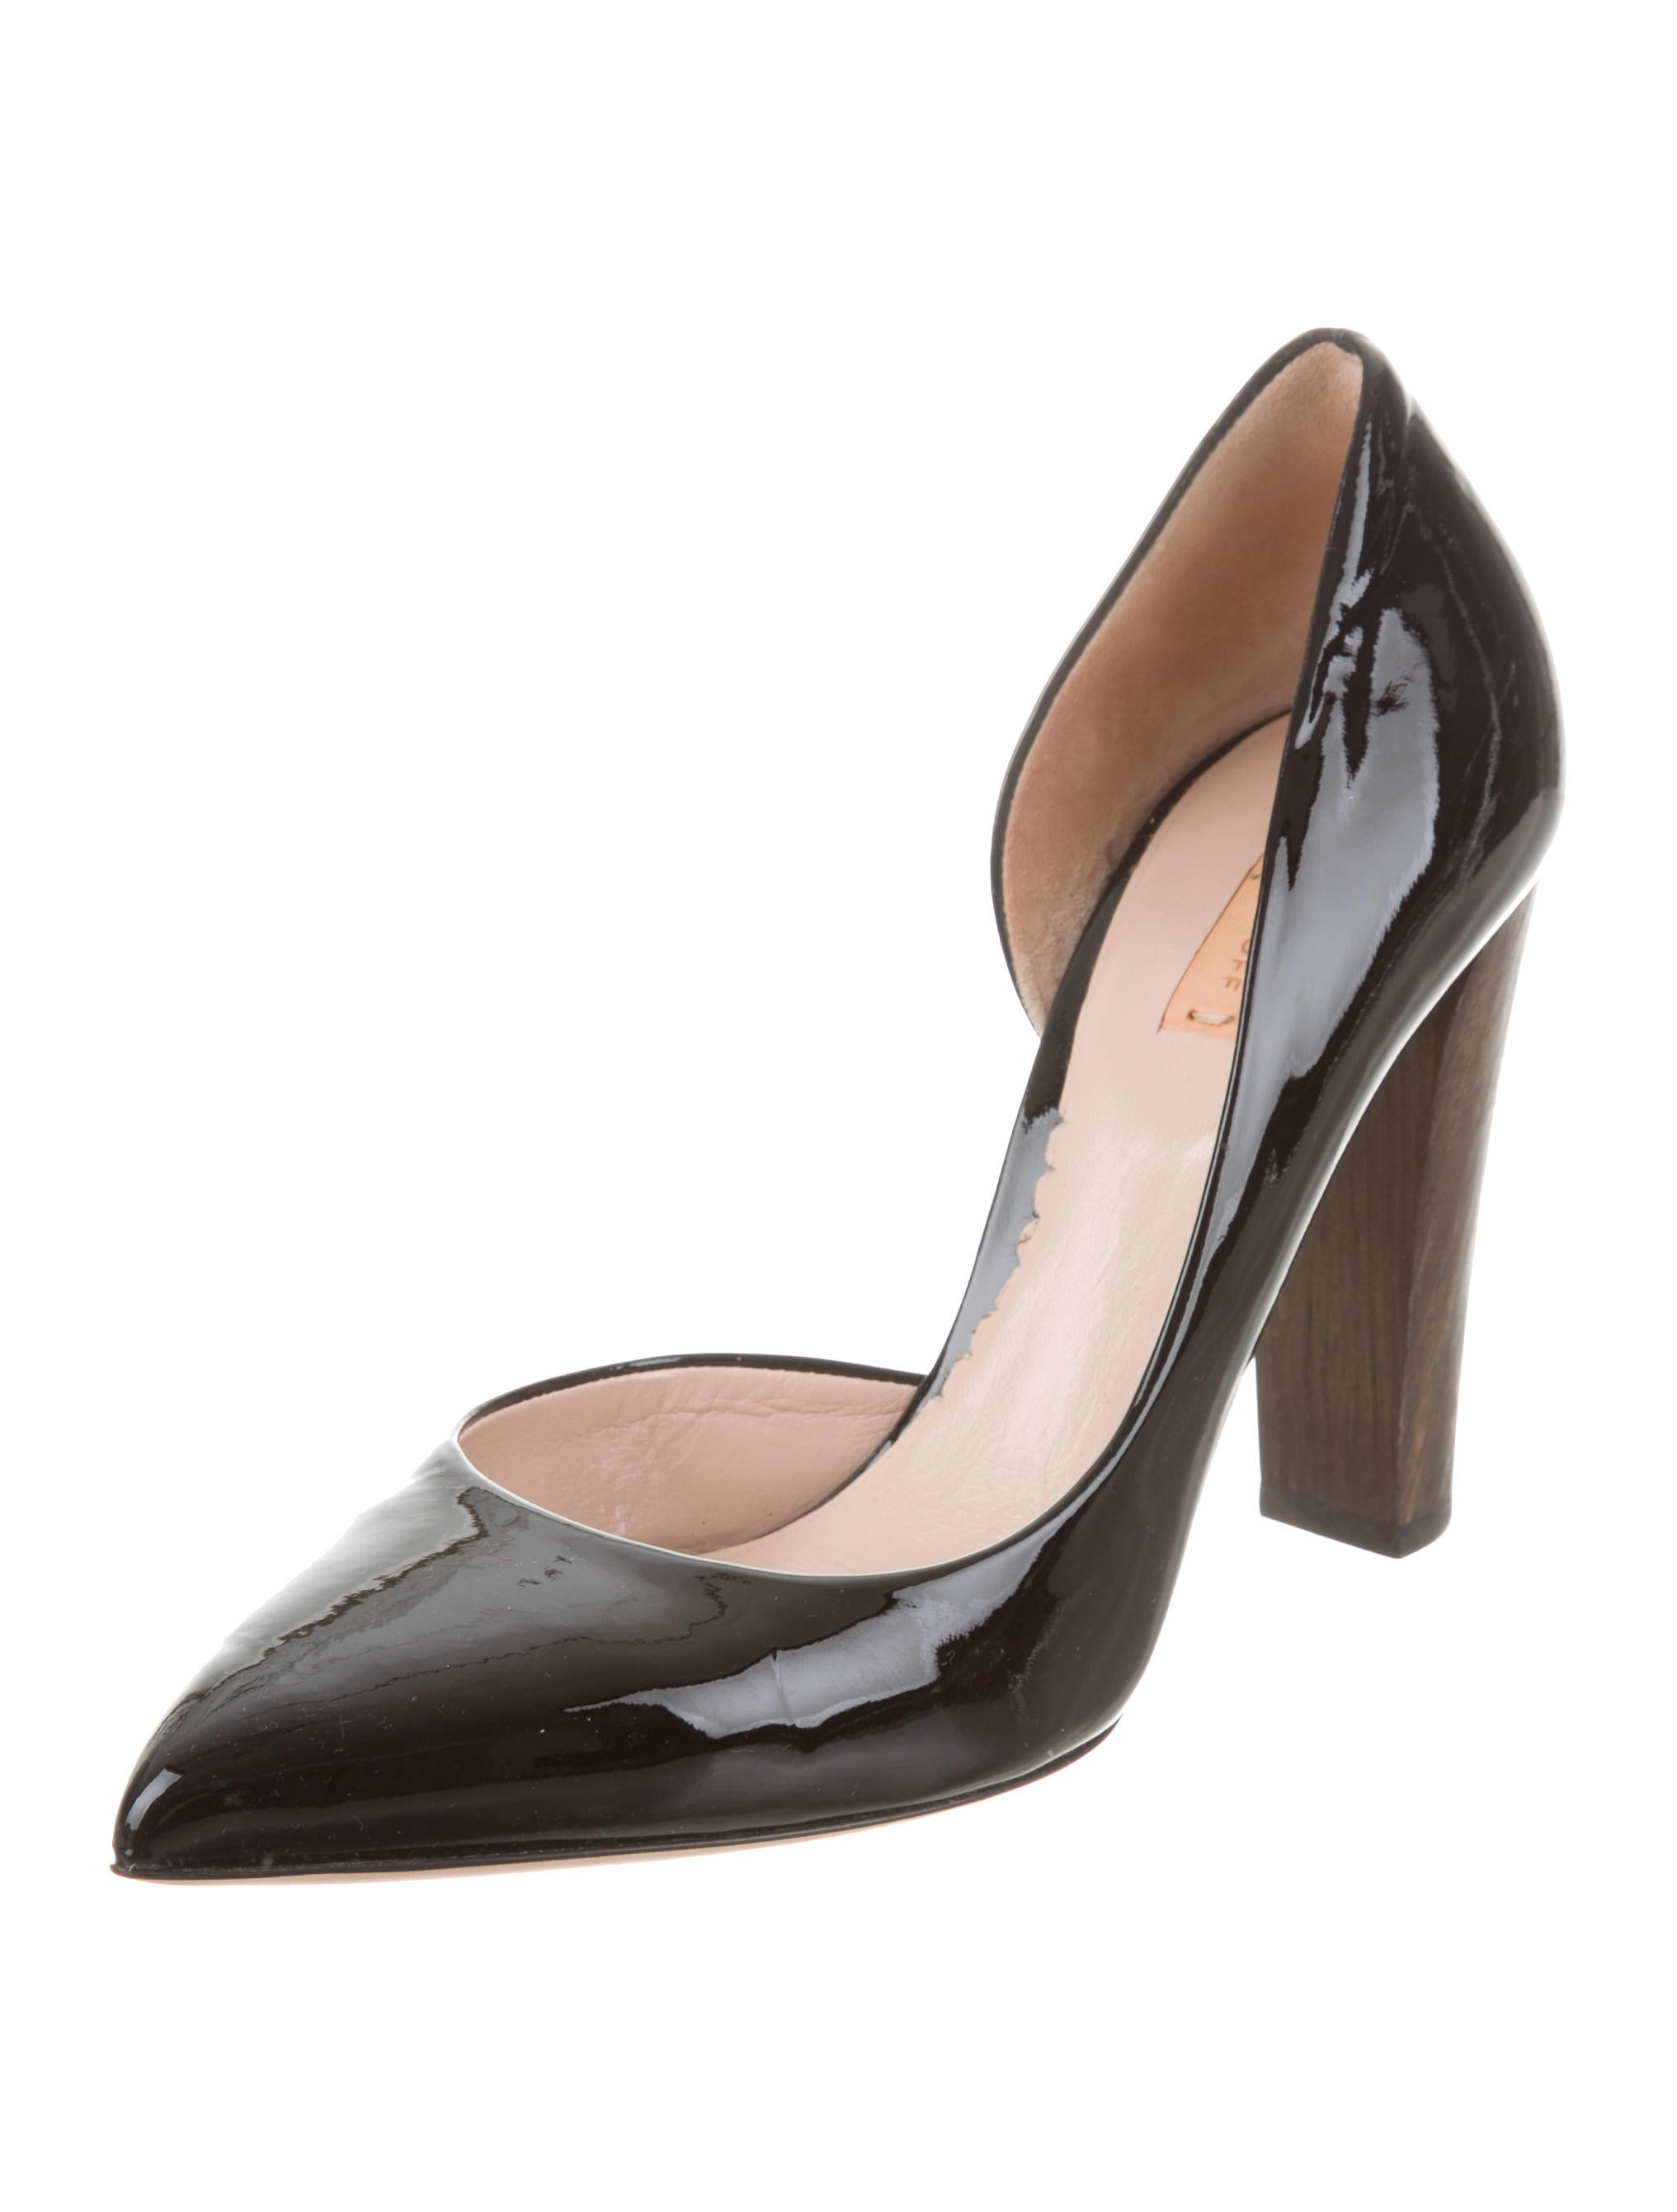 pay with paypal Reed Krakoff Leather Pointed-Toe Pumps buy for sale YVRvS8h